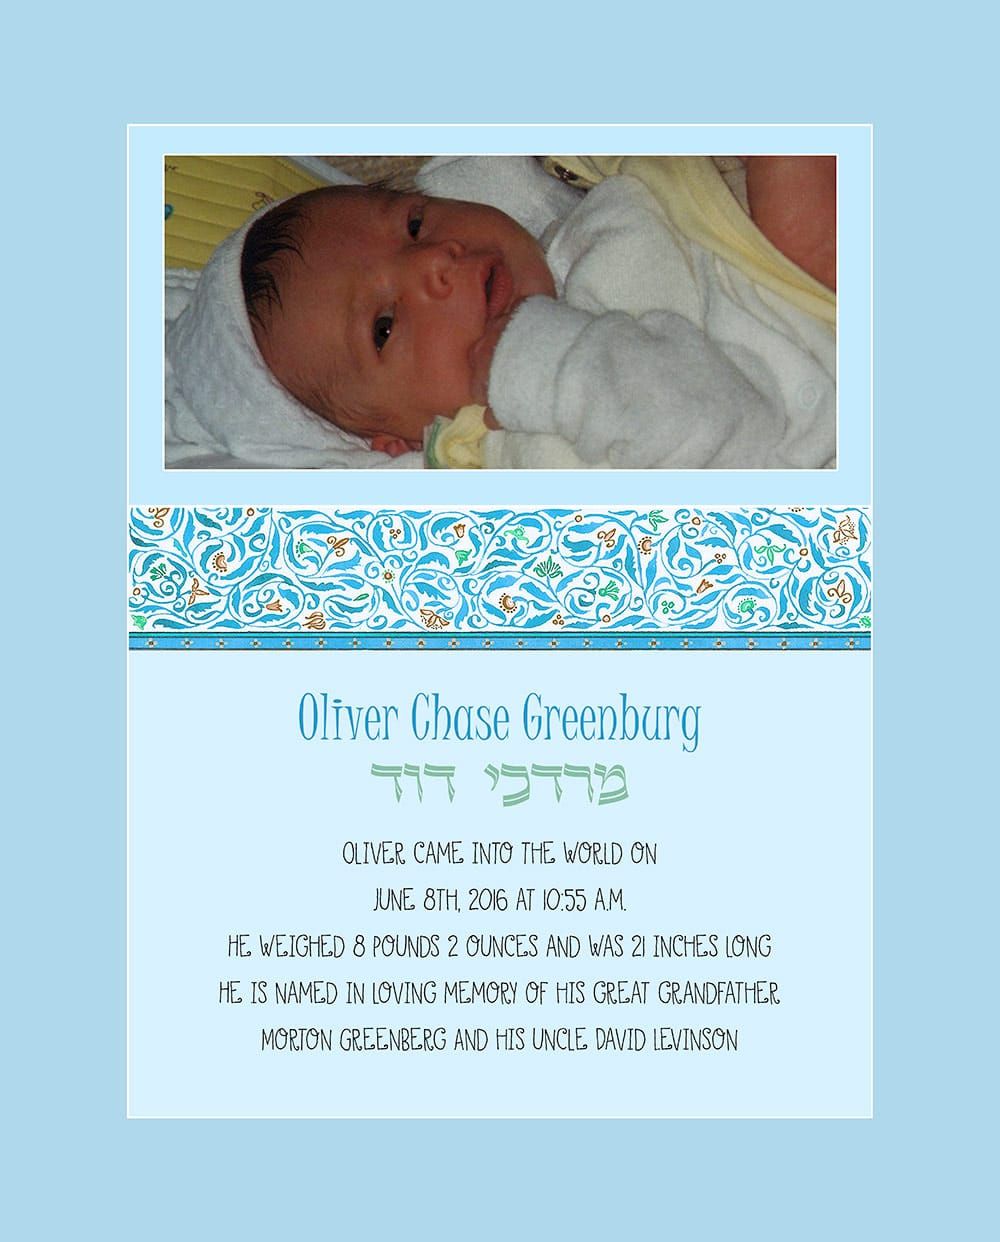 Baby Boy Cutie Pie Blue Baby Wall Art G-BB-15b by Mickie Caspi